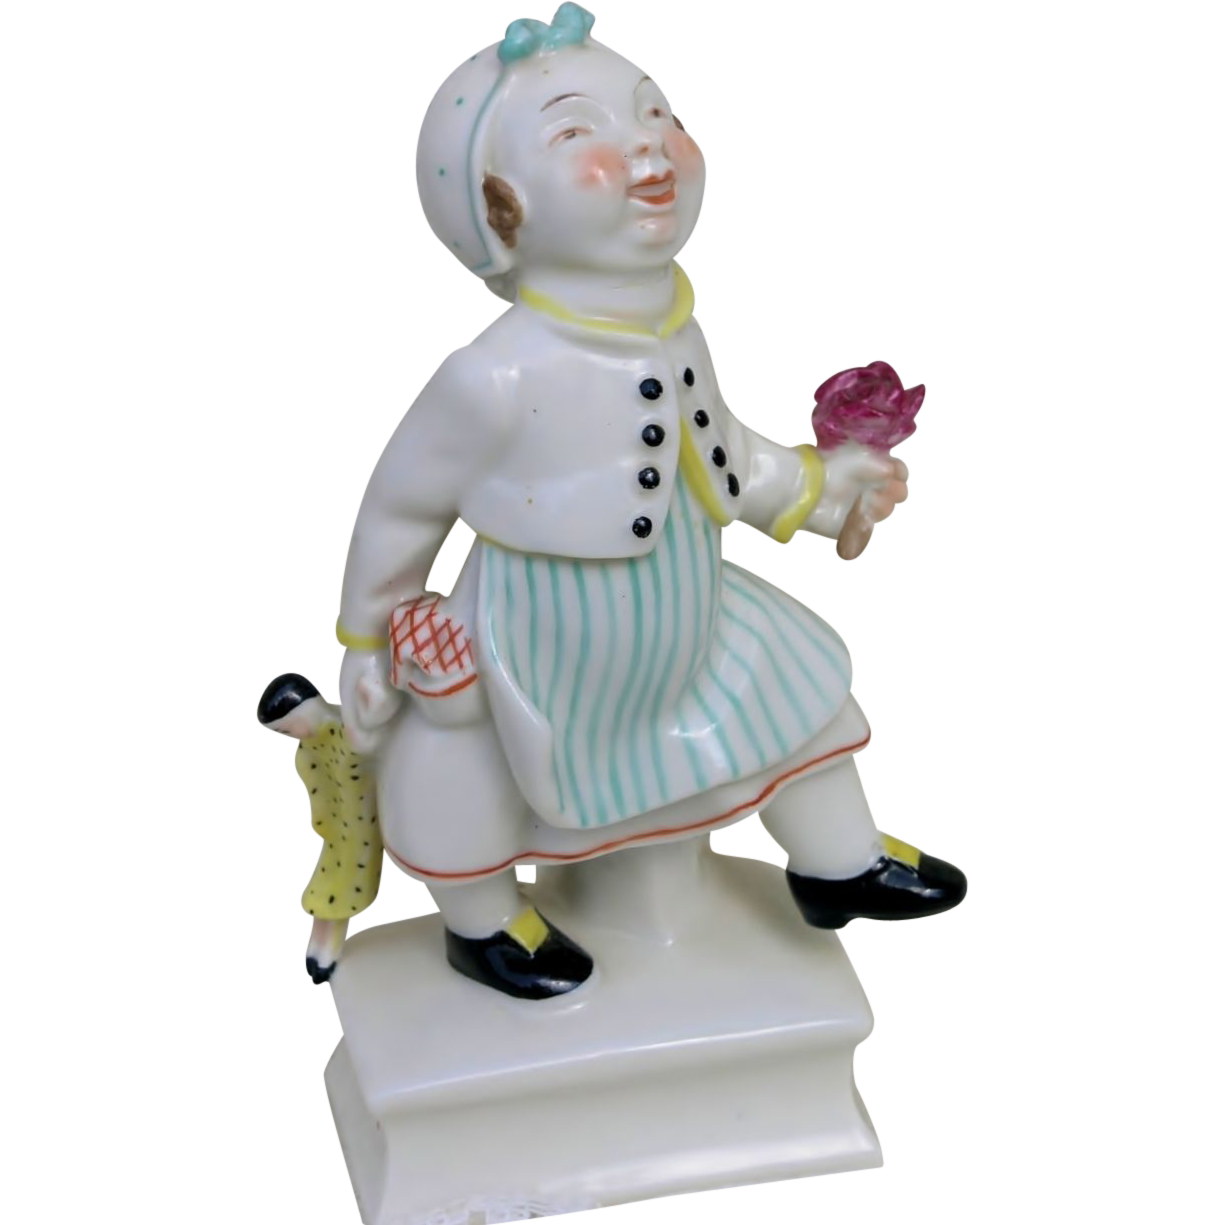 German Porcelain Figurine of Little girl with her doll by Sonnleitner and Schwarzburger